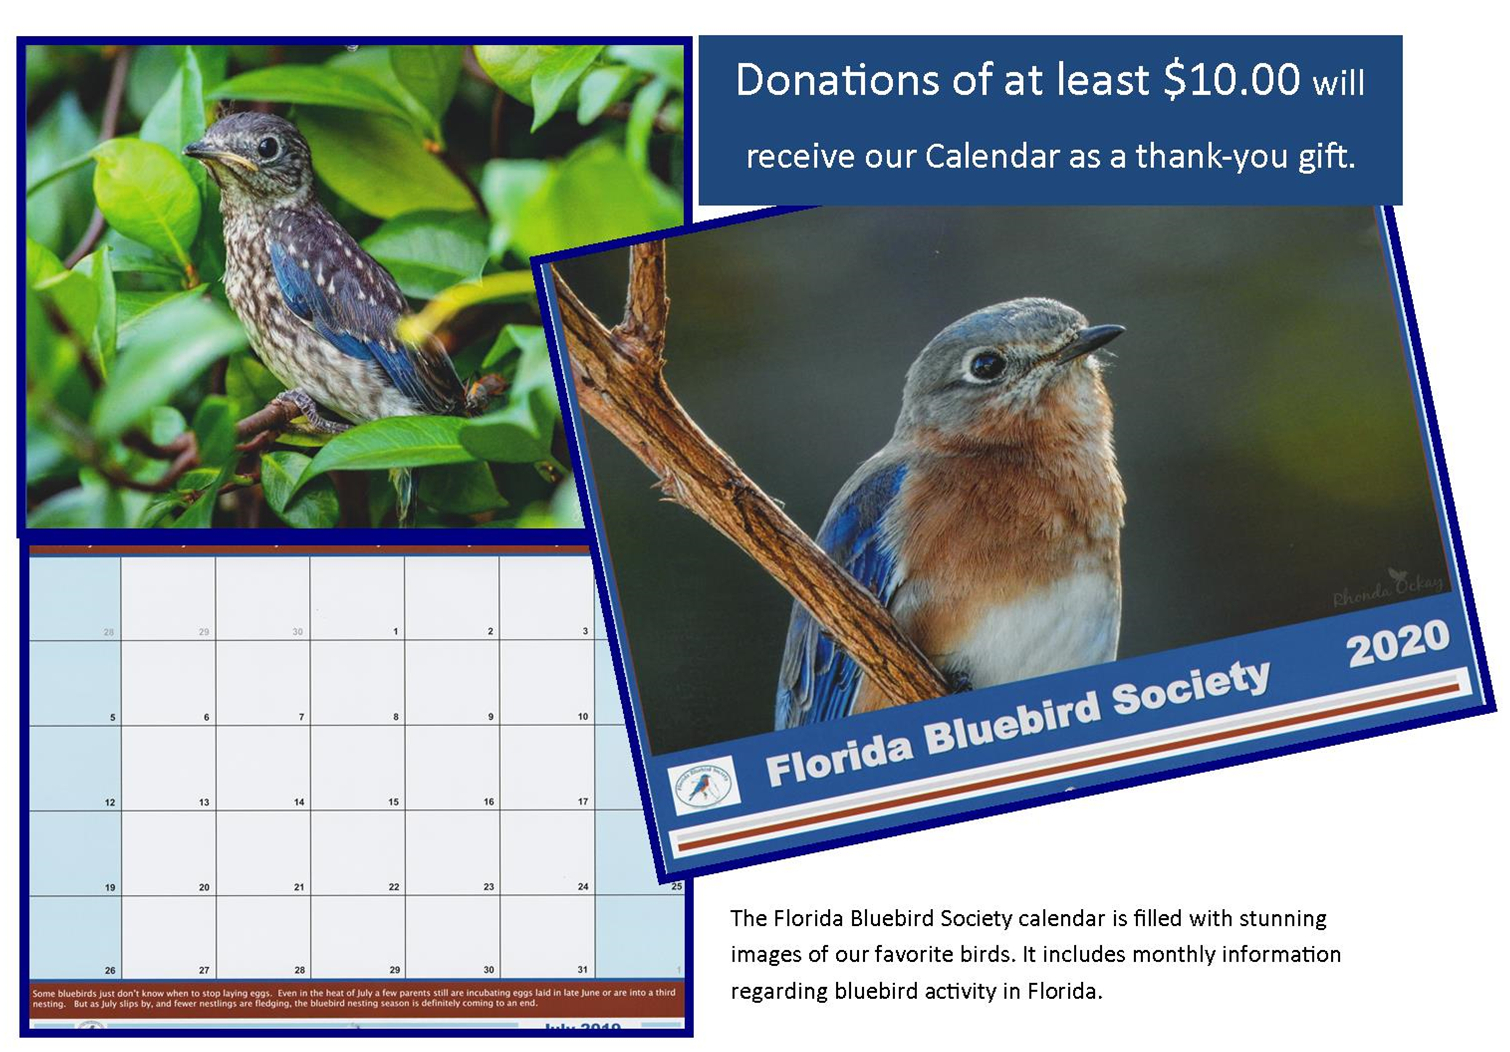 2021 Calendar Contest Florida Bluebird Society